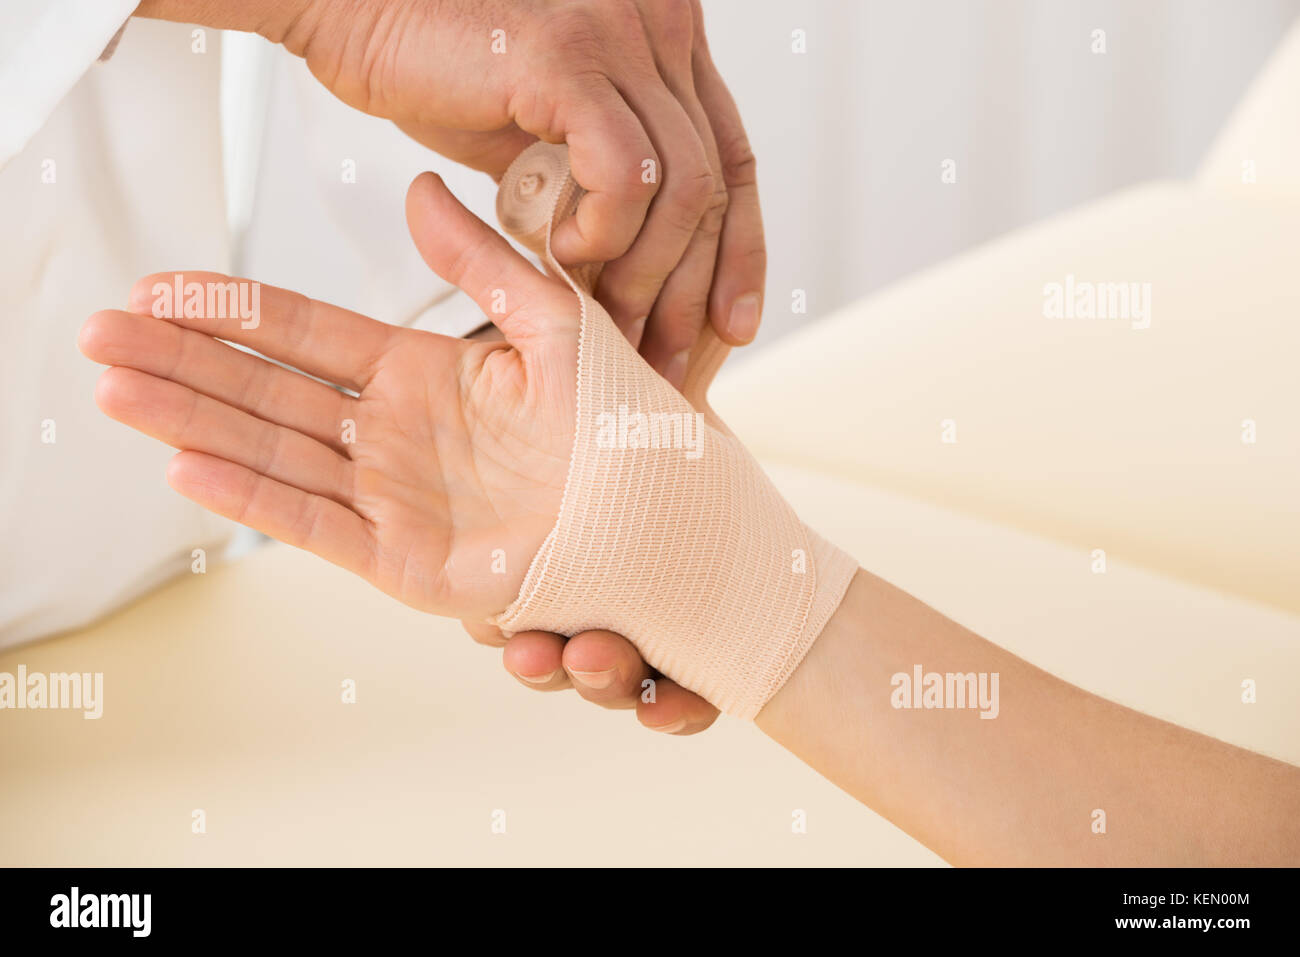 Close Up Of Doctor Hand Wrapping Elastic Bandage To Patient Stock